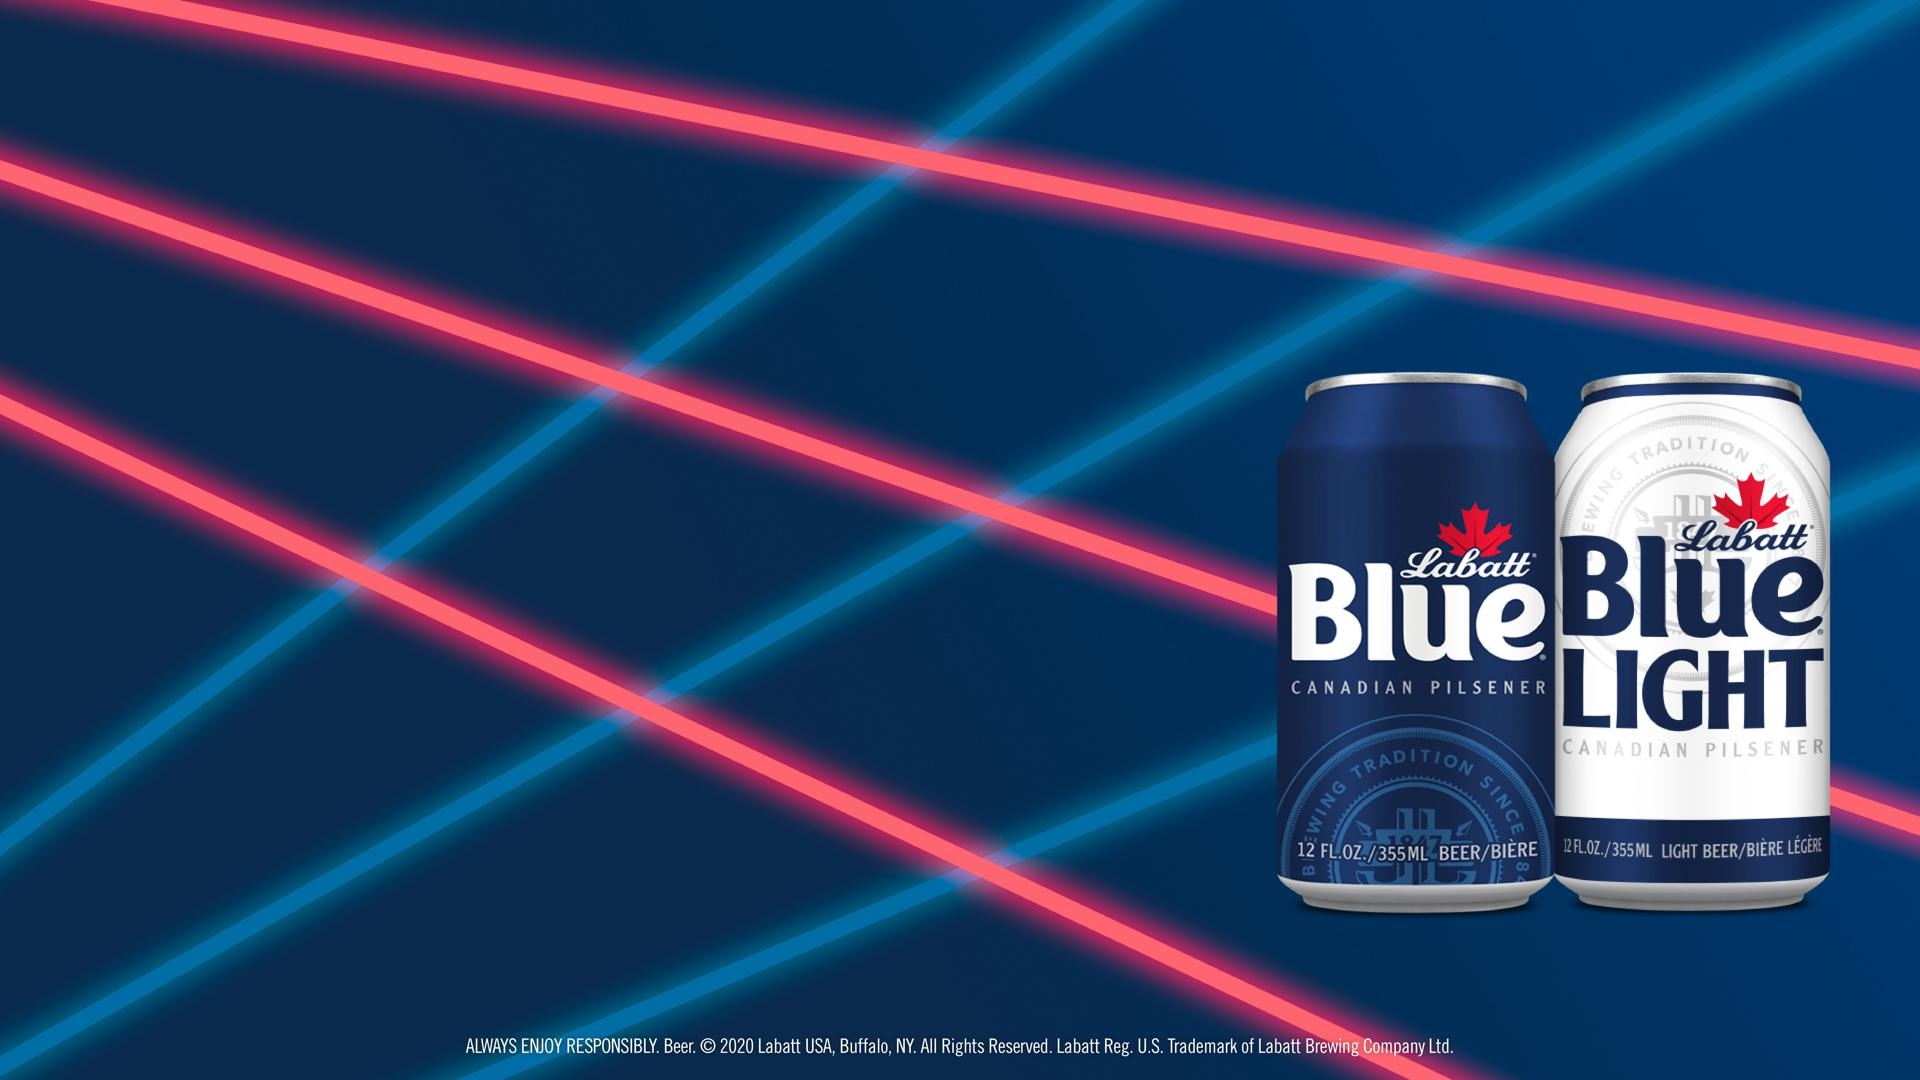 Blue and Blue Light Cans in front of an '80s Lasers Background